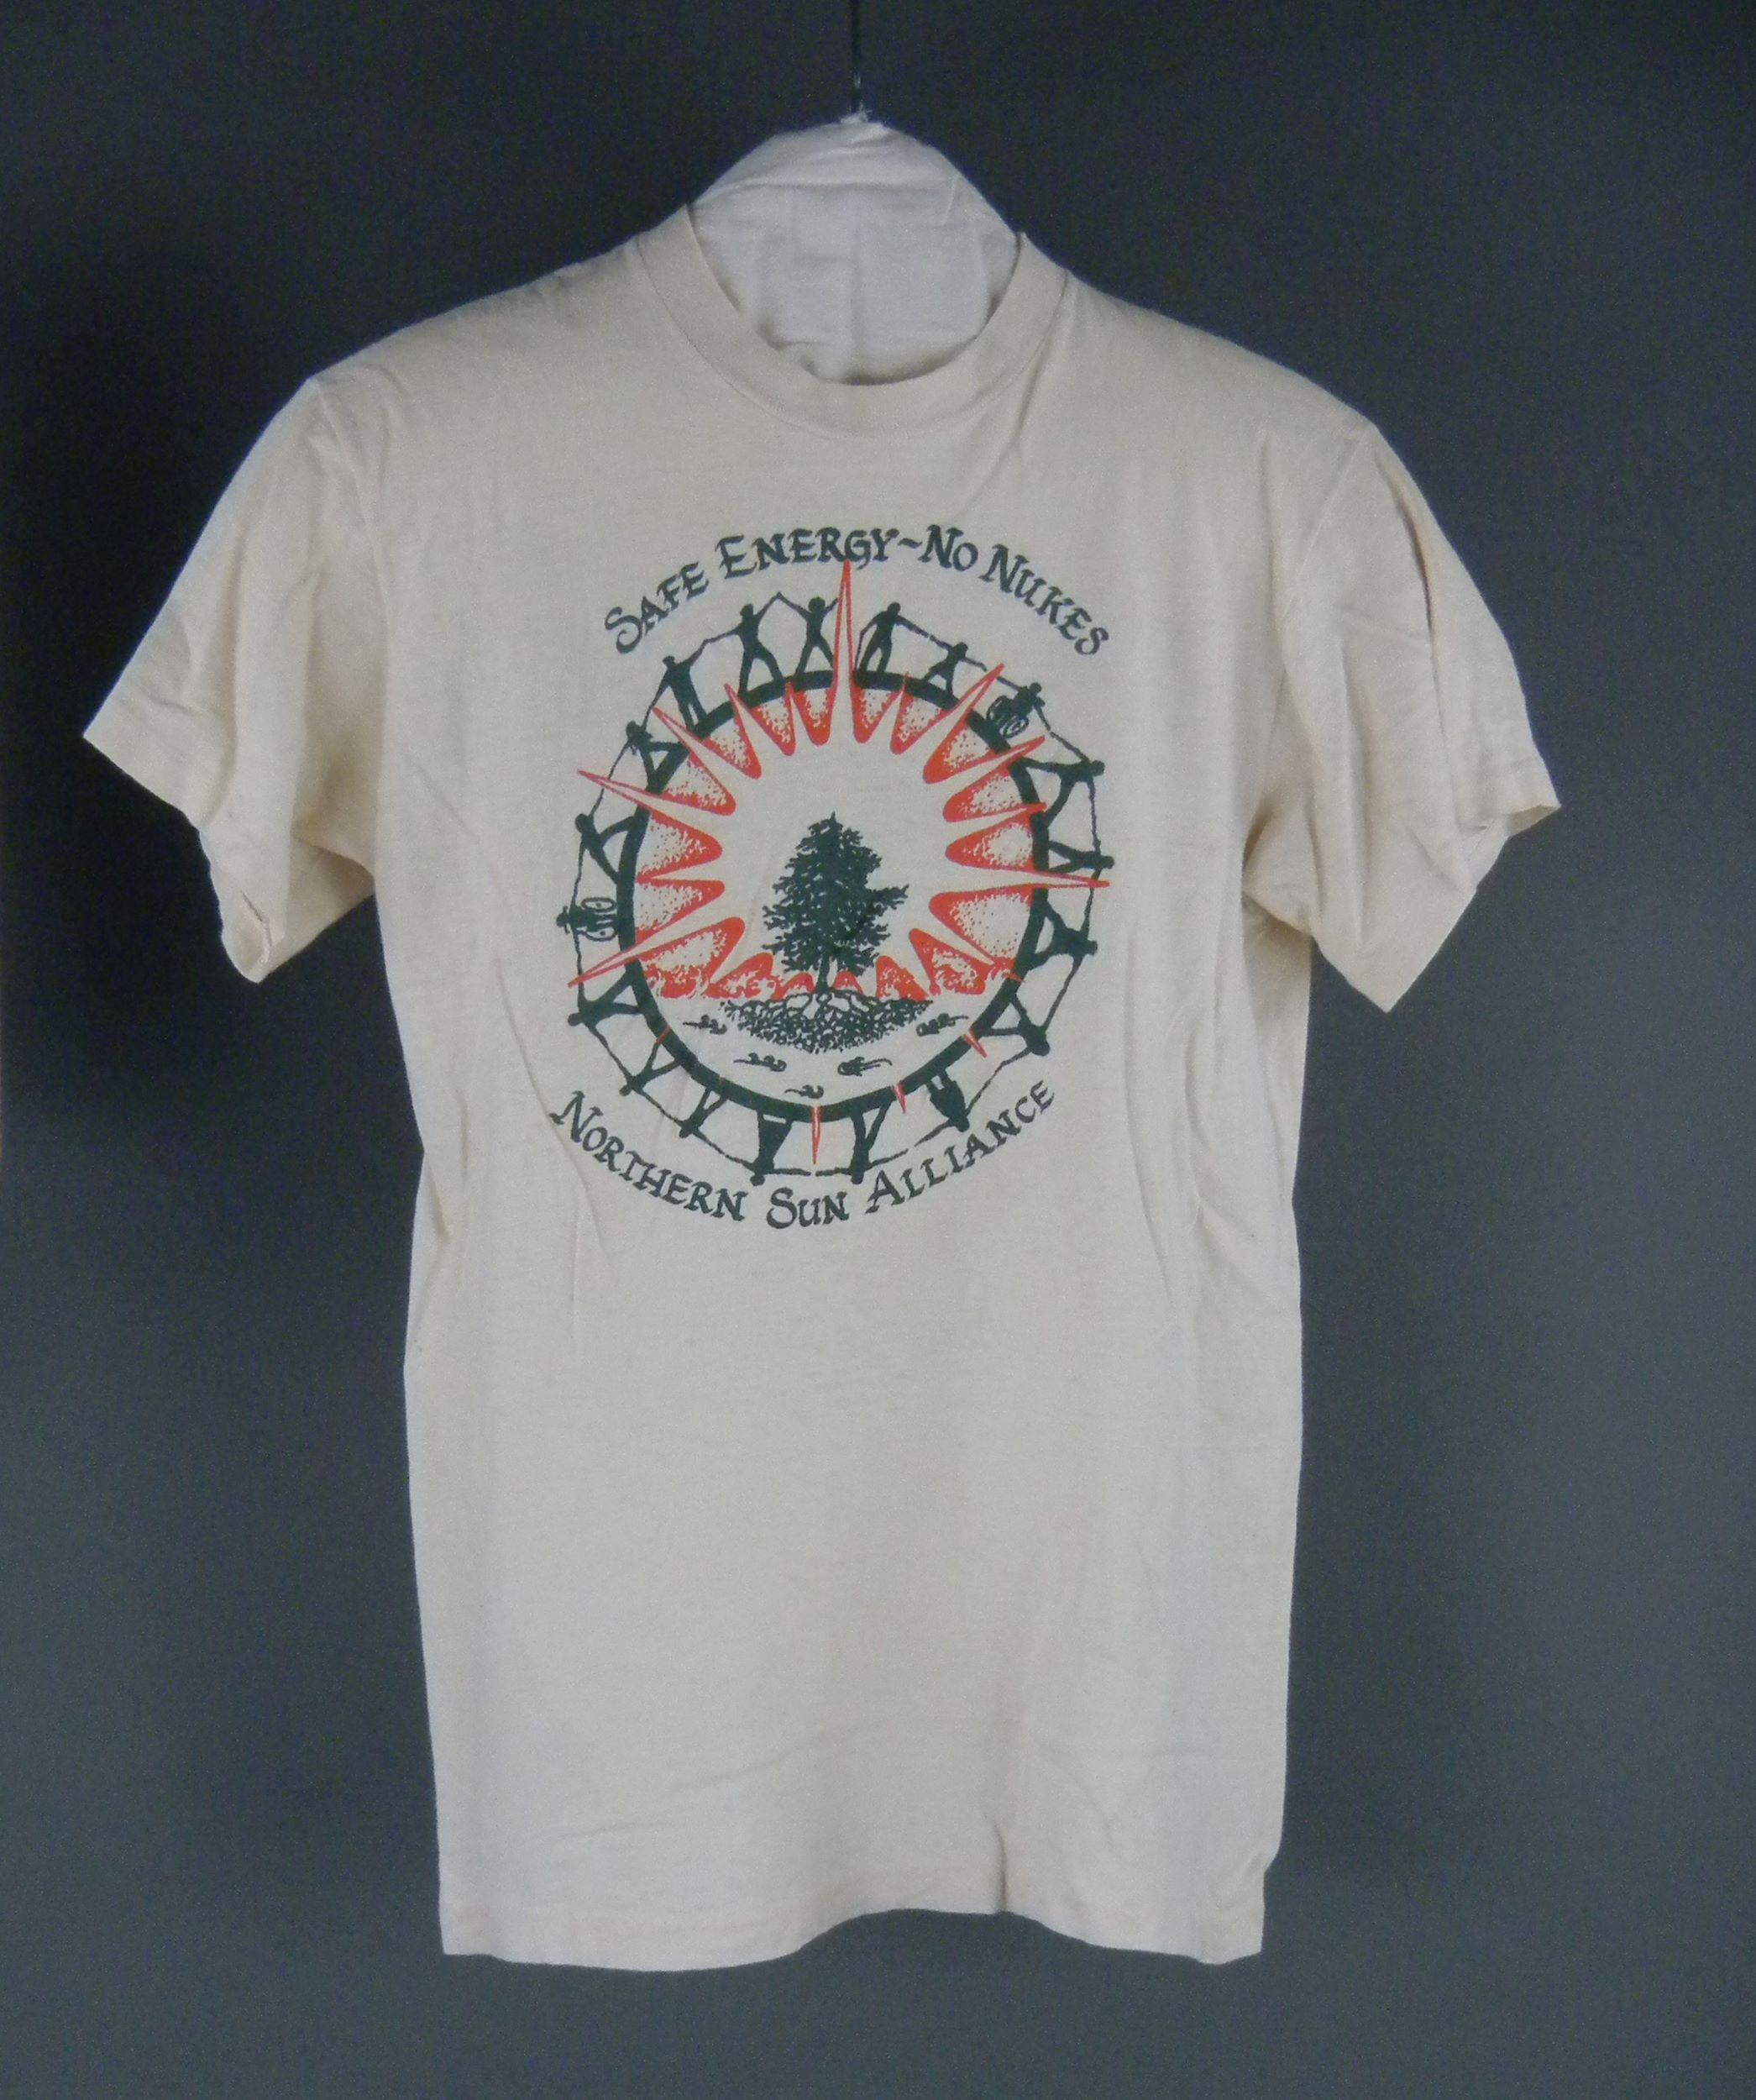 Image of The Northern Sun Alliance Tee shirt.